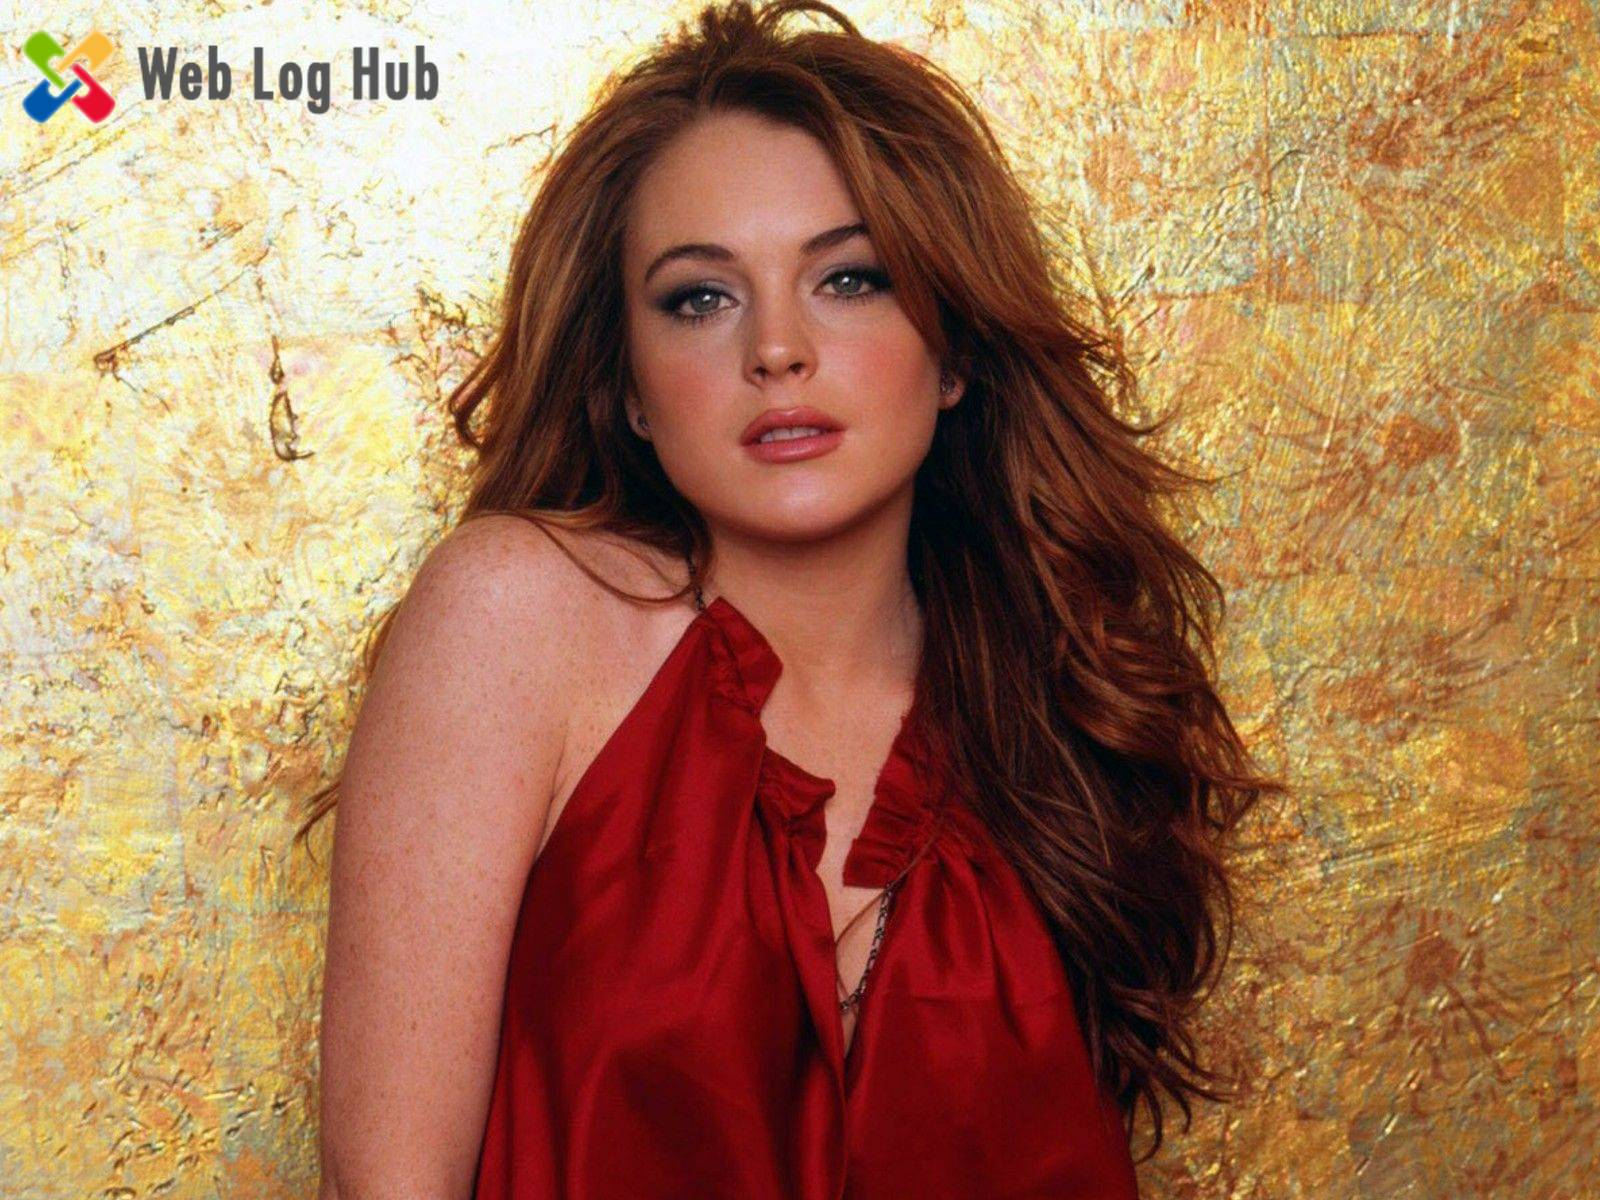 Lindsay Lohan ran naked in store - Web Log Hub